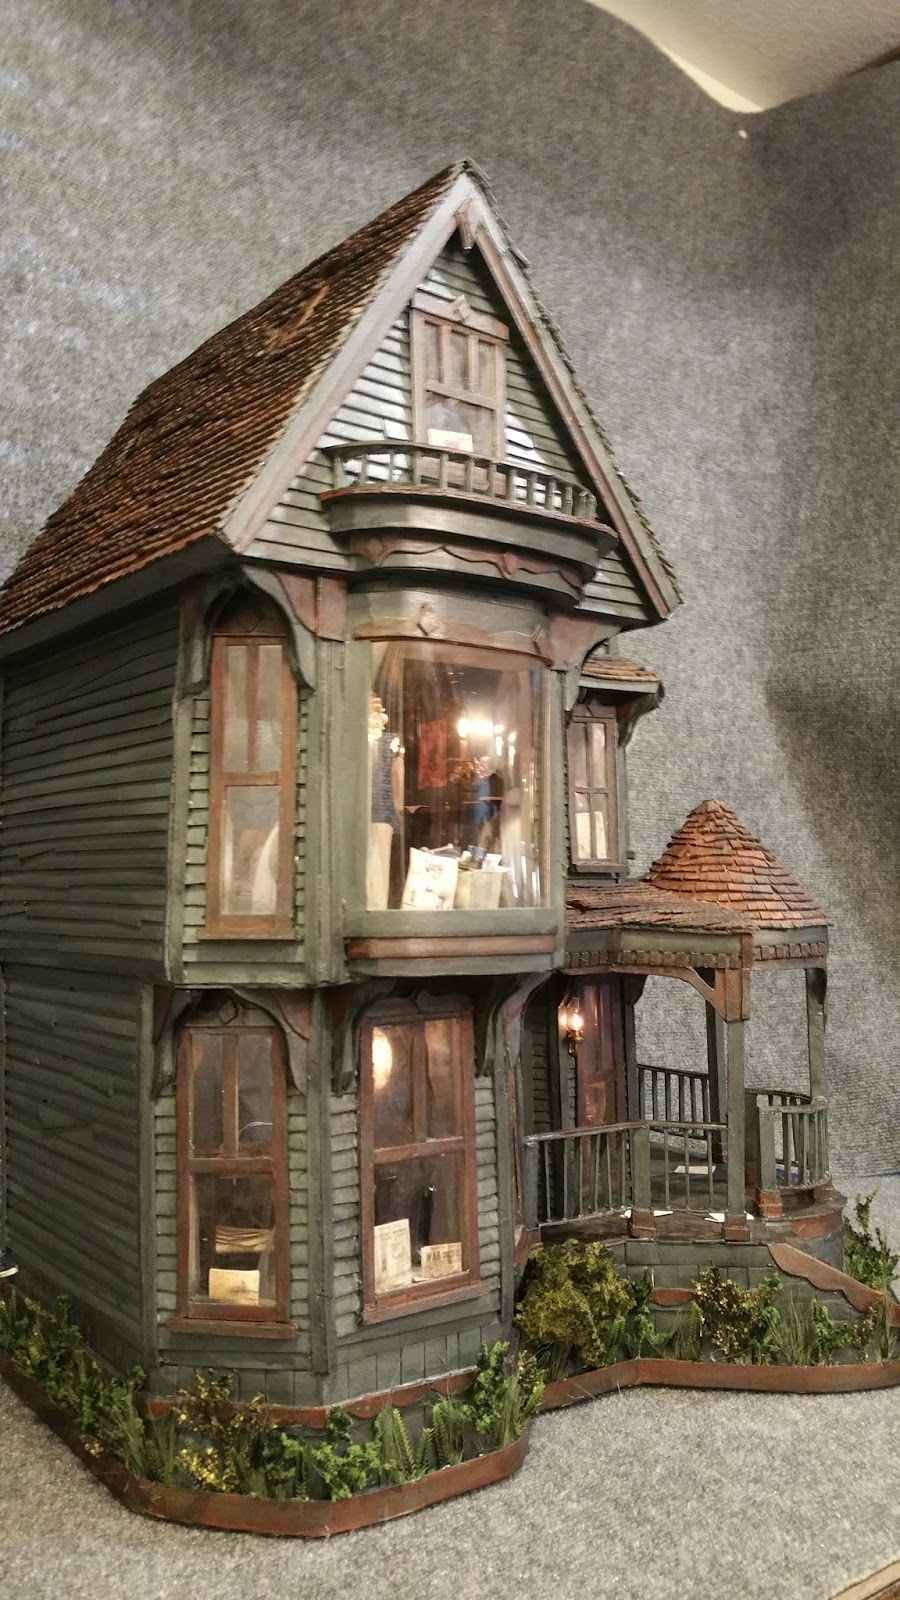 greggs miniature imaginations haunted mansion made out of cardboard. Black Bedroom Furniture Sets. Home Design Ideas